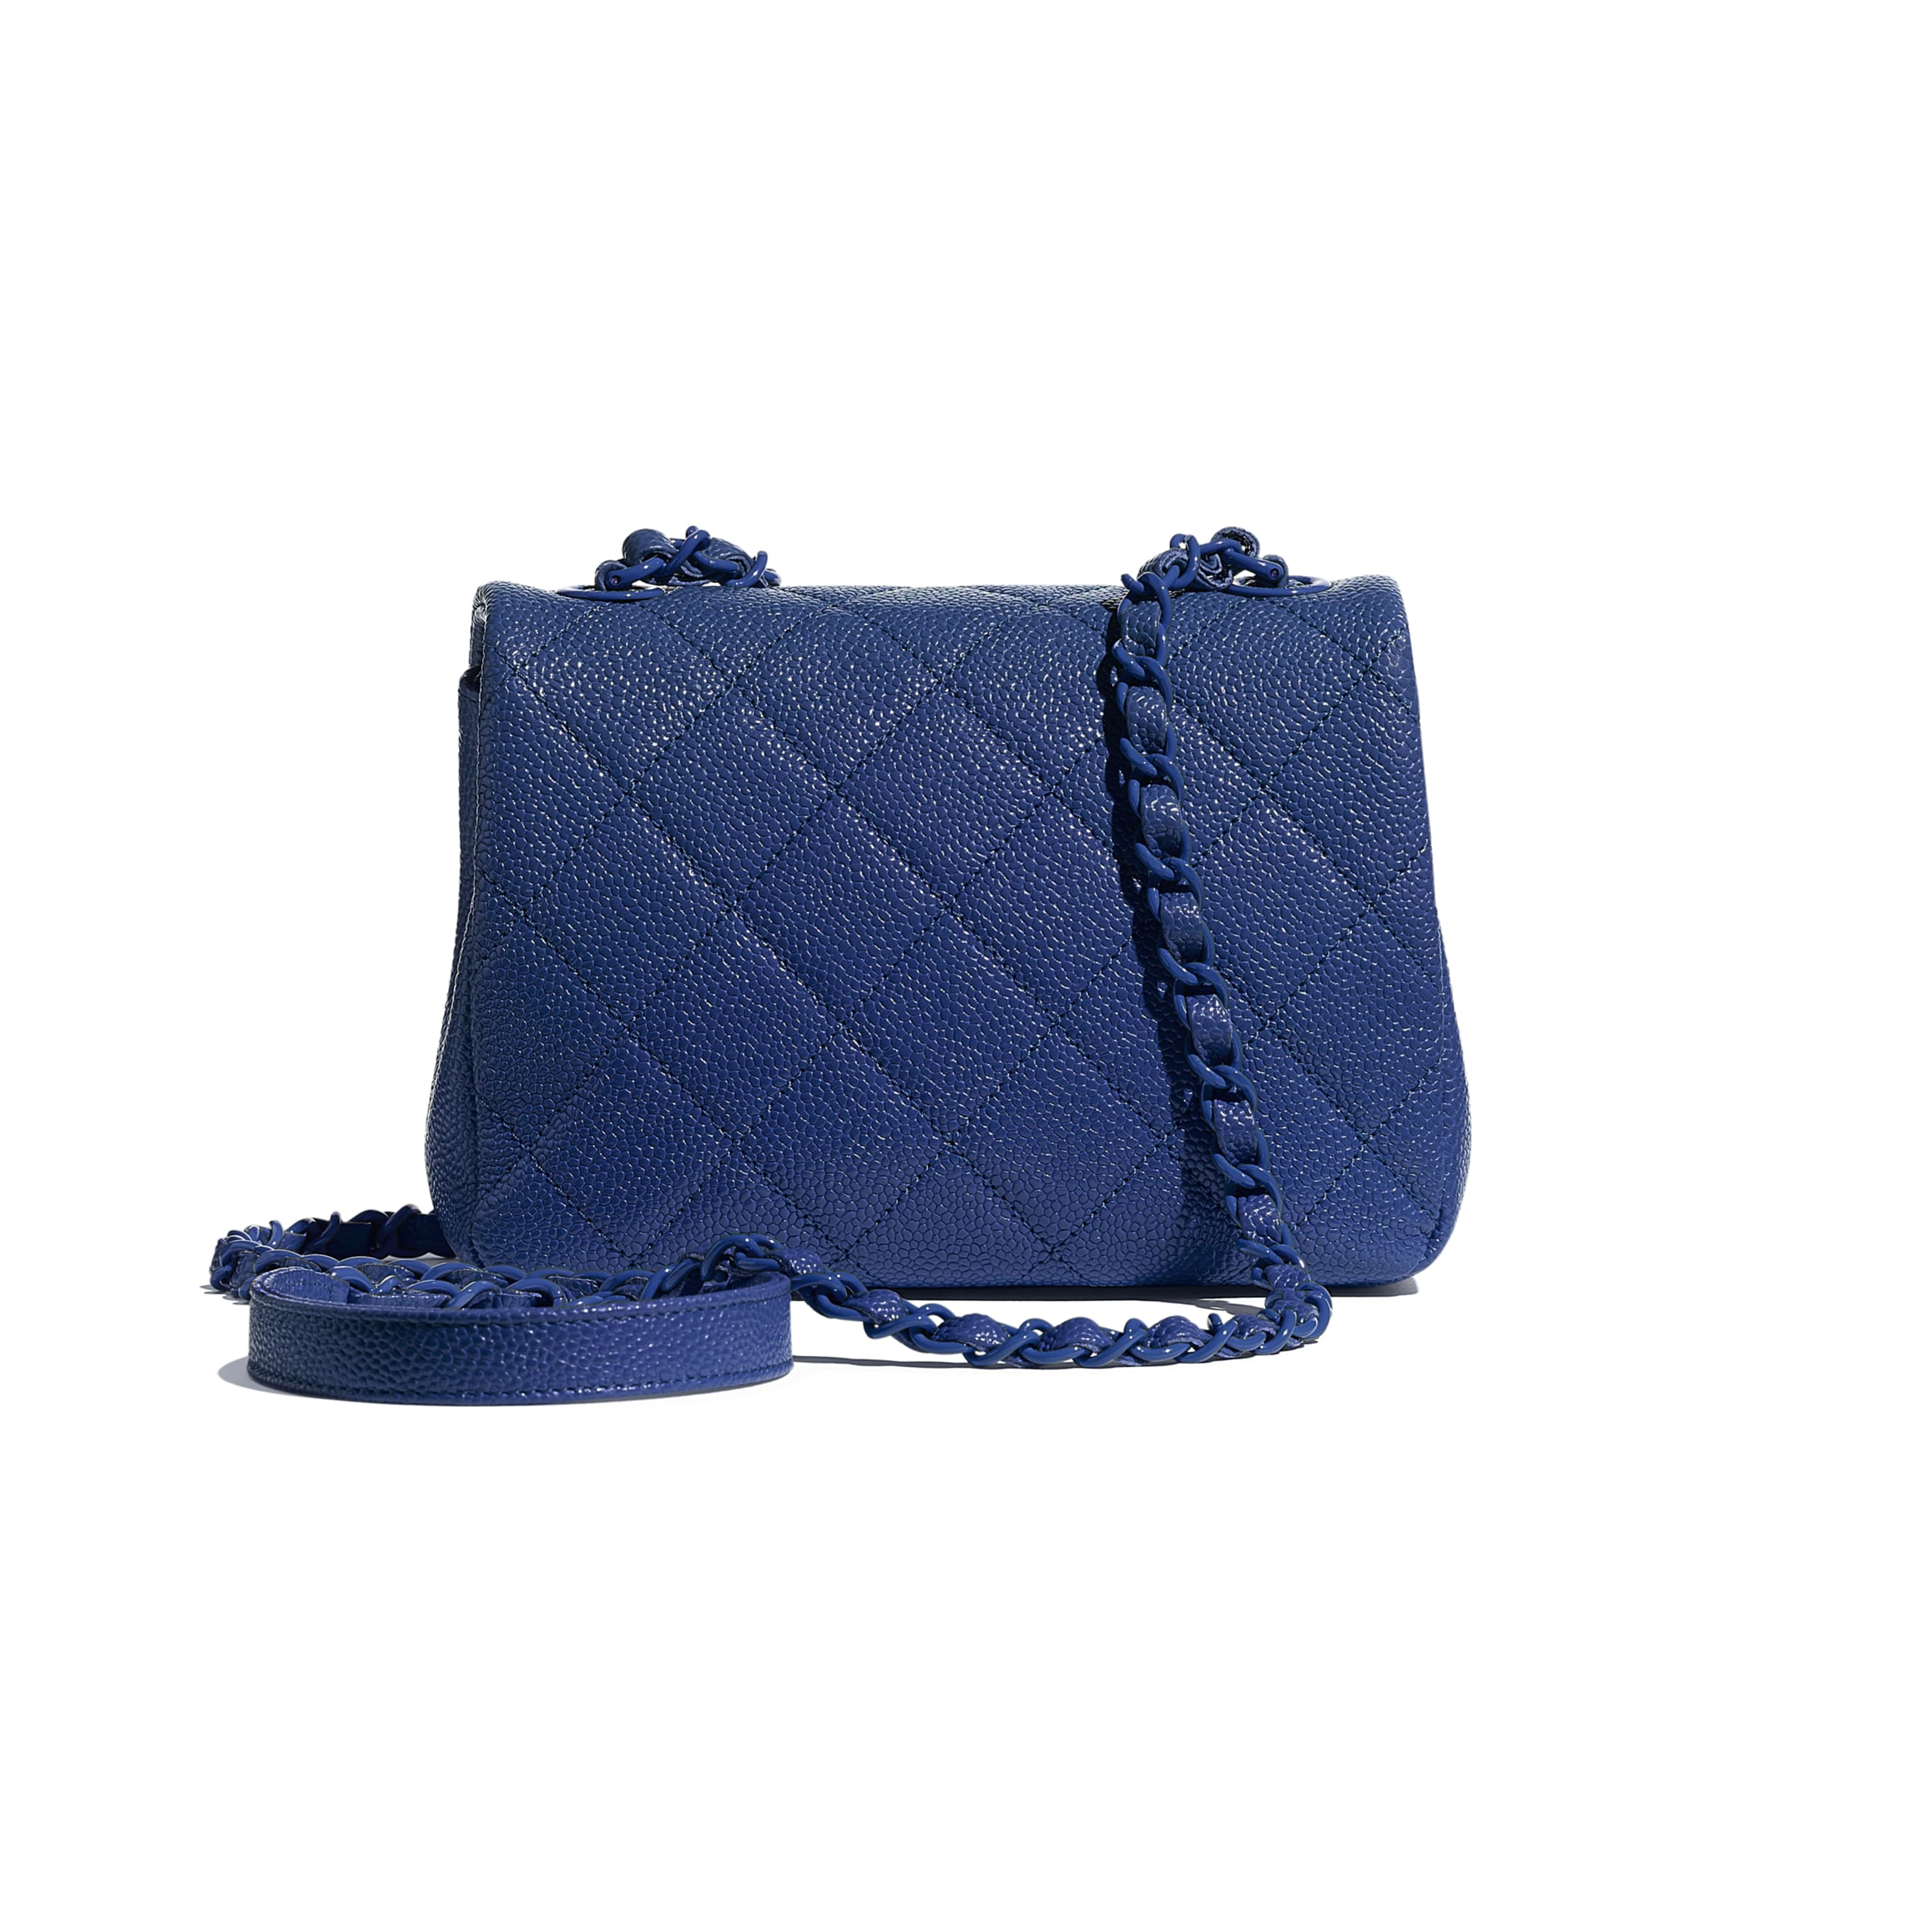 Flap Bag - Dark Blue - Grained Calfskin & Lacquered Metal - CHANEL - Alternative view - see standard sized version